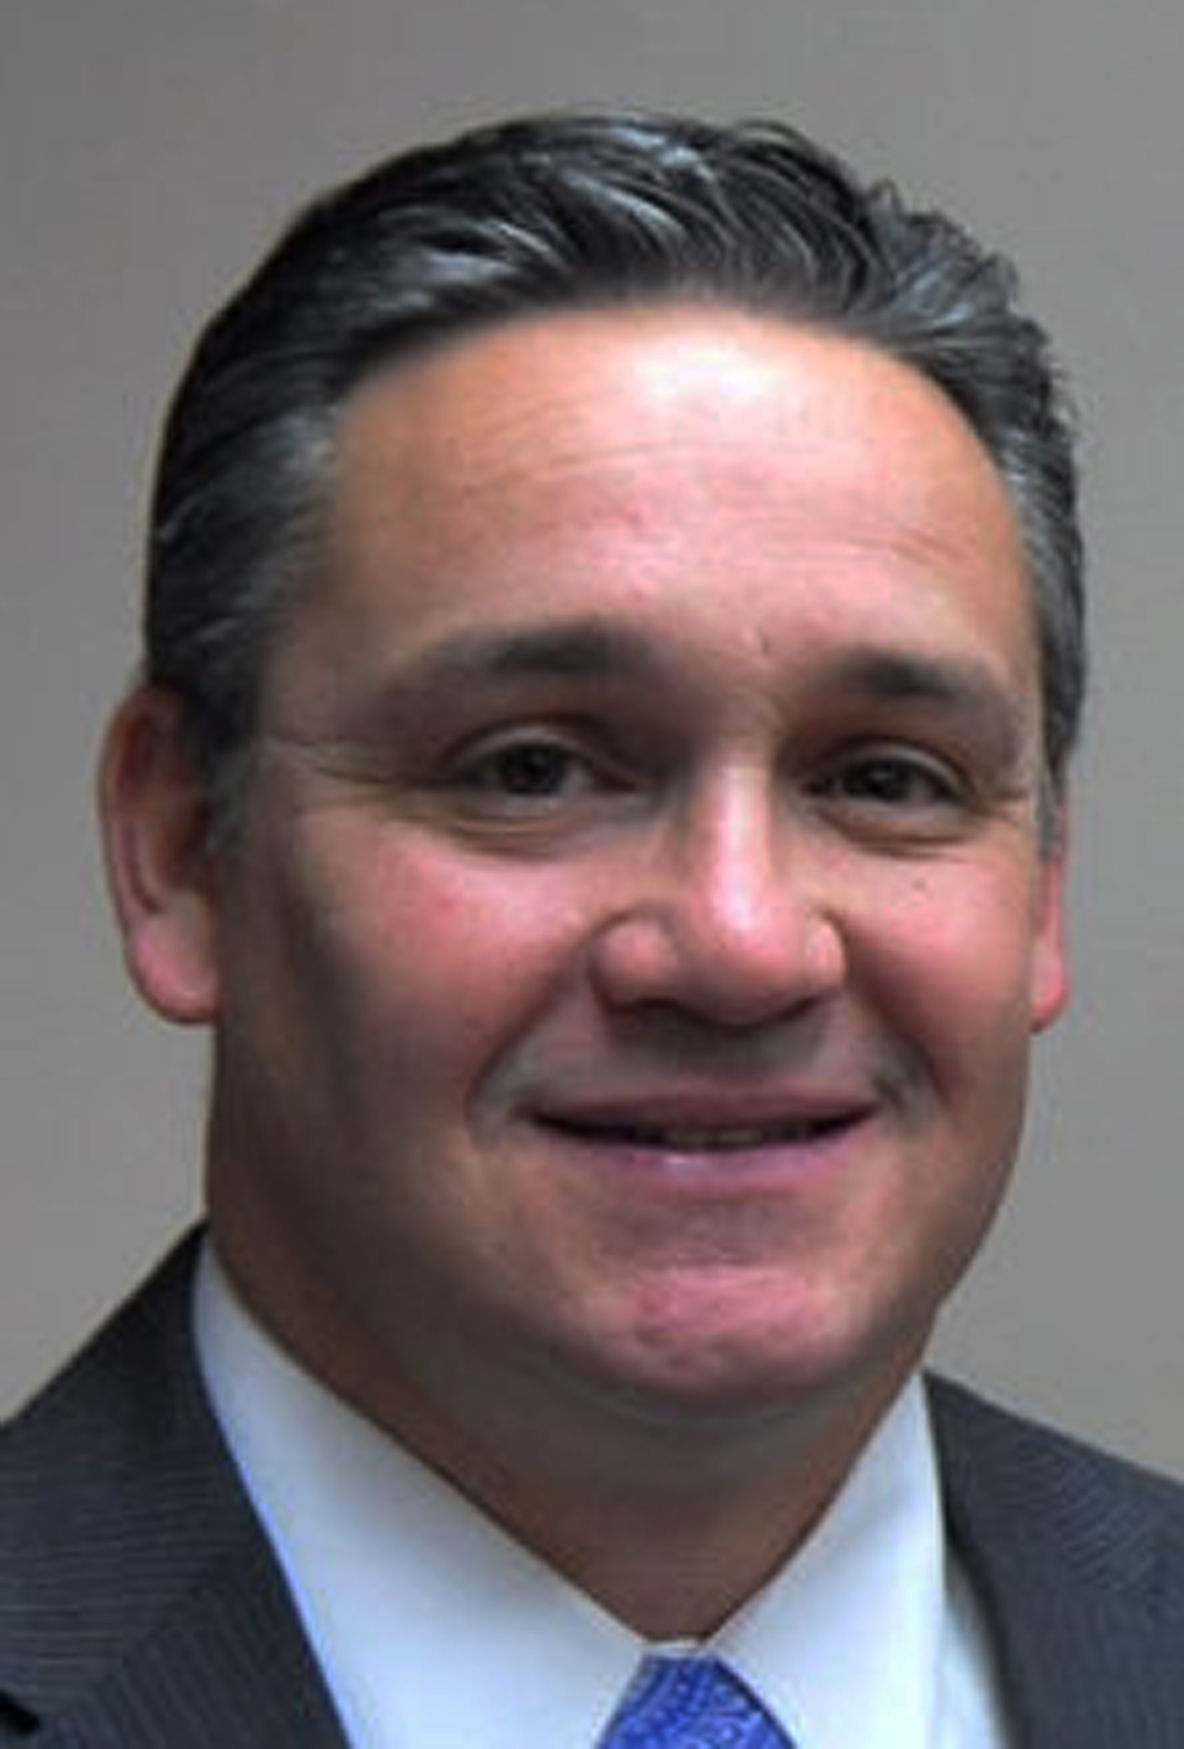 Kings County District Attorney Keith Fagundes